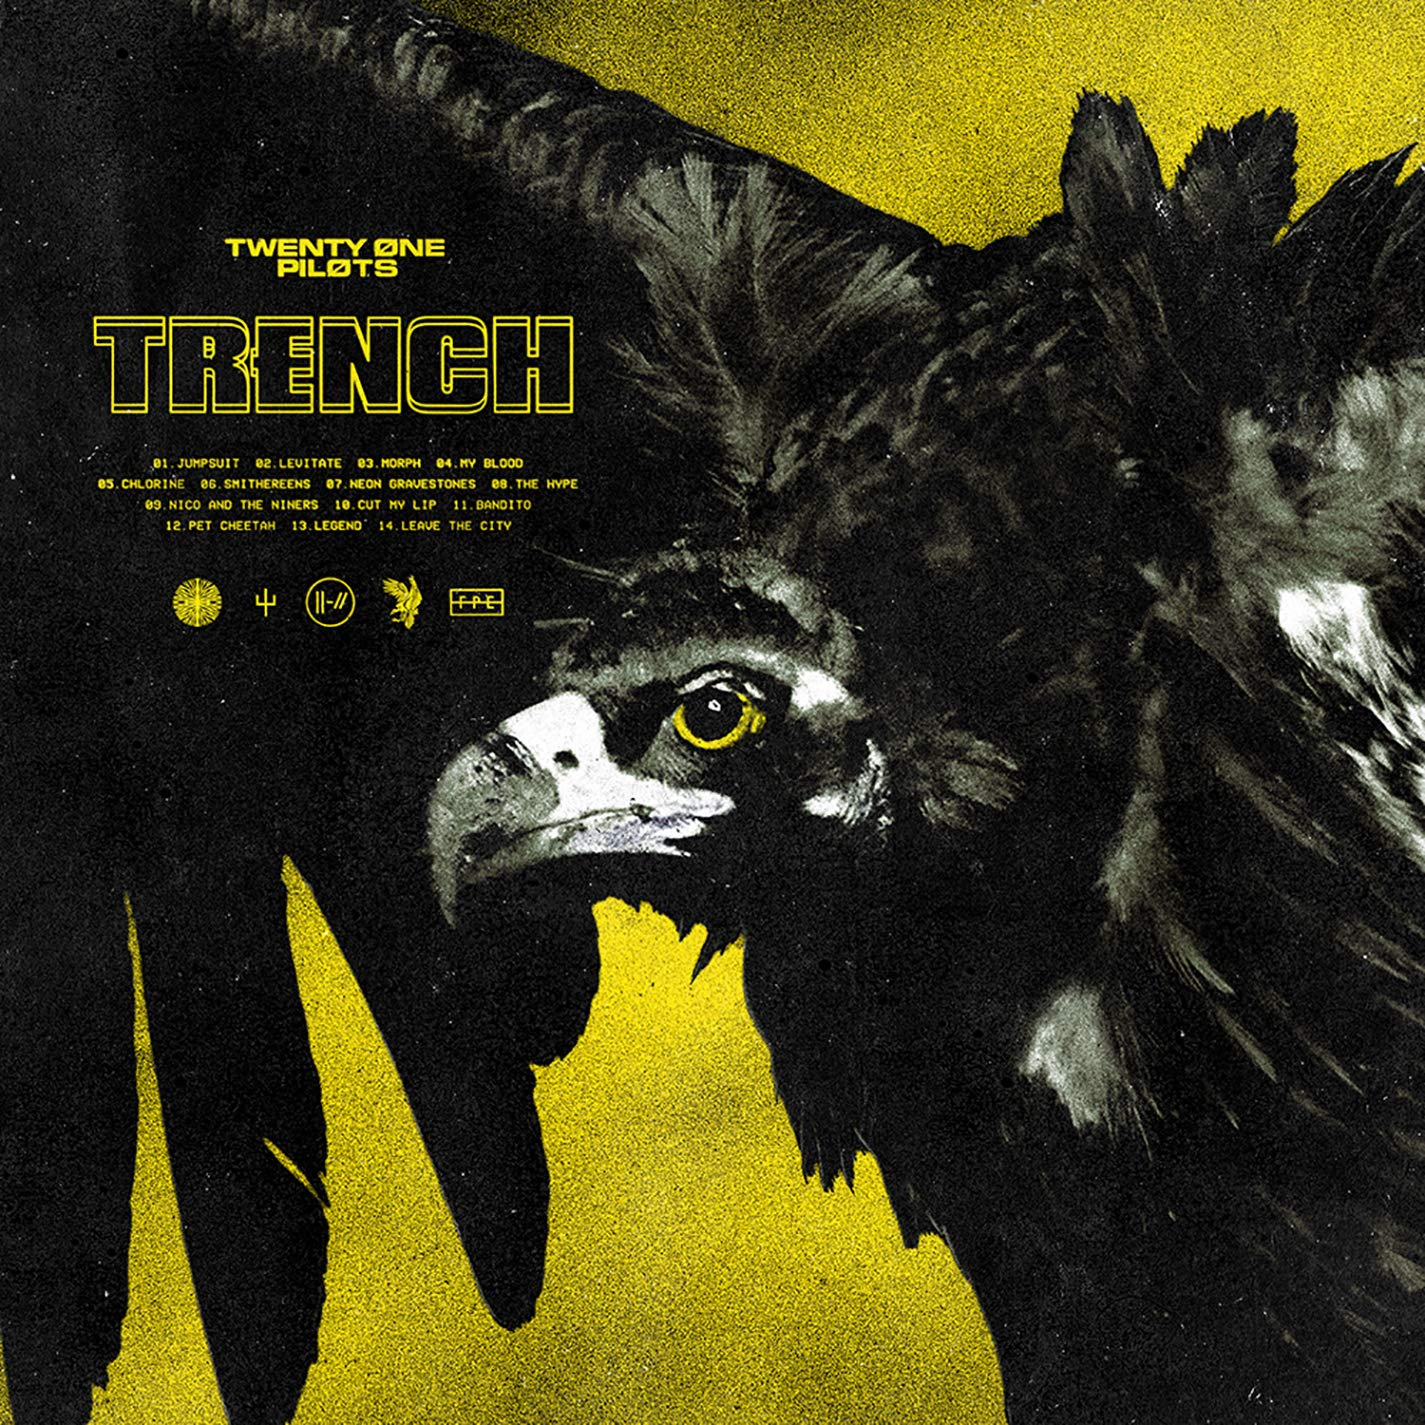 Trench by WEA/Fueled by Ramen